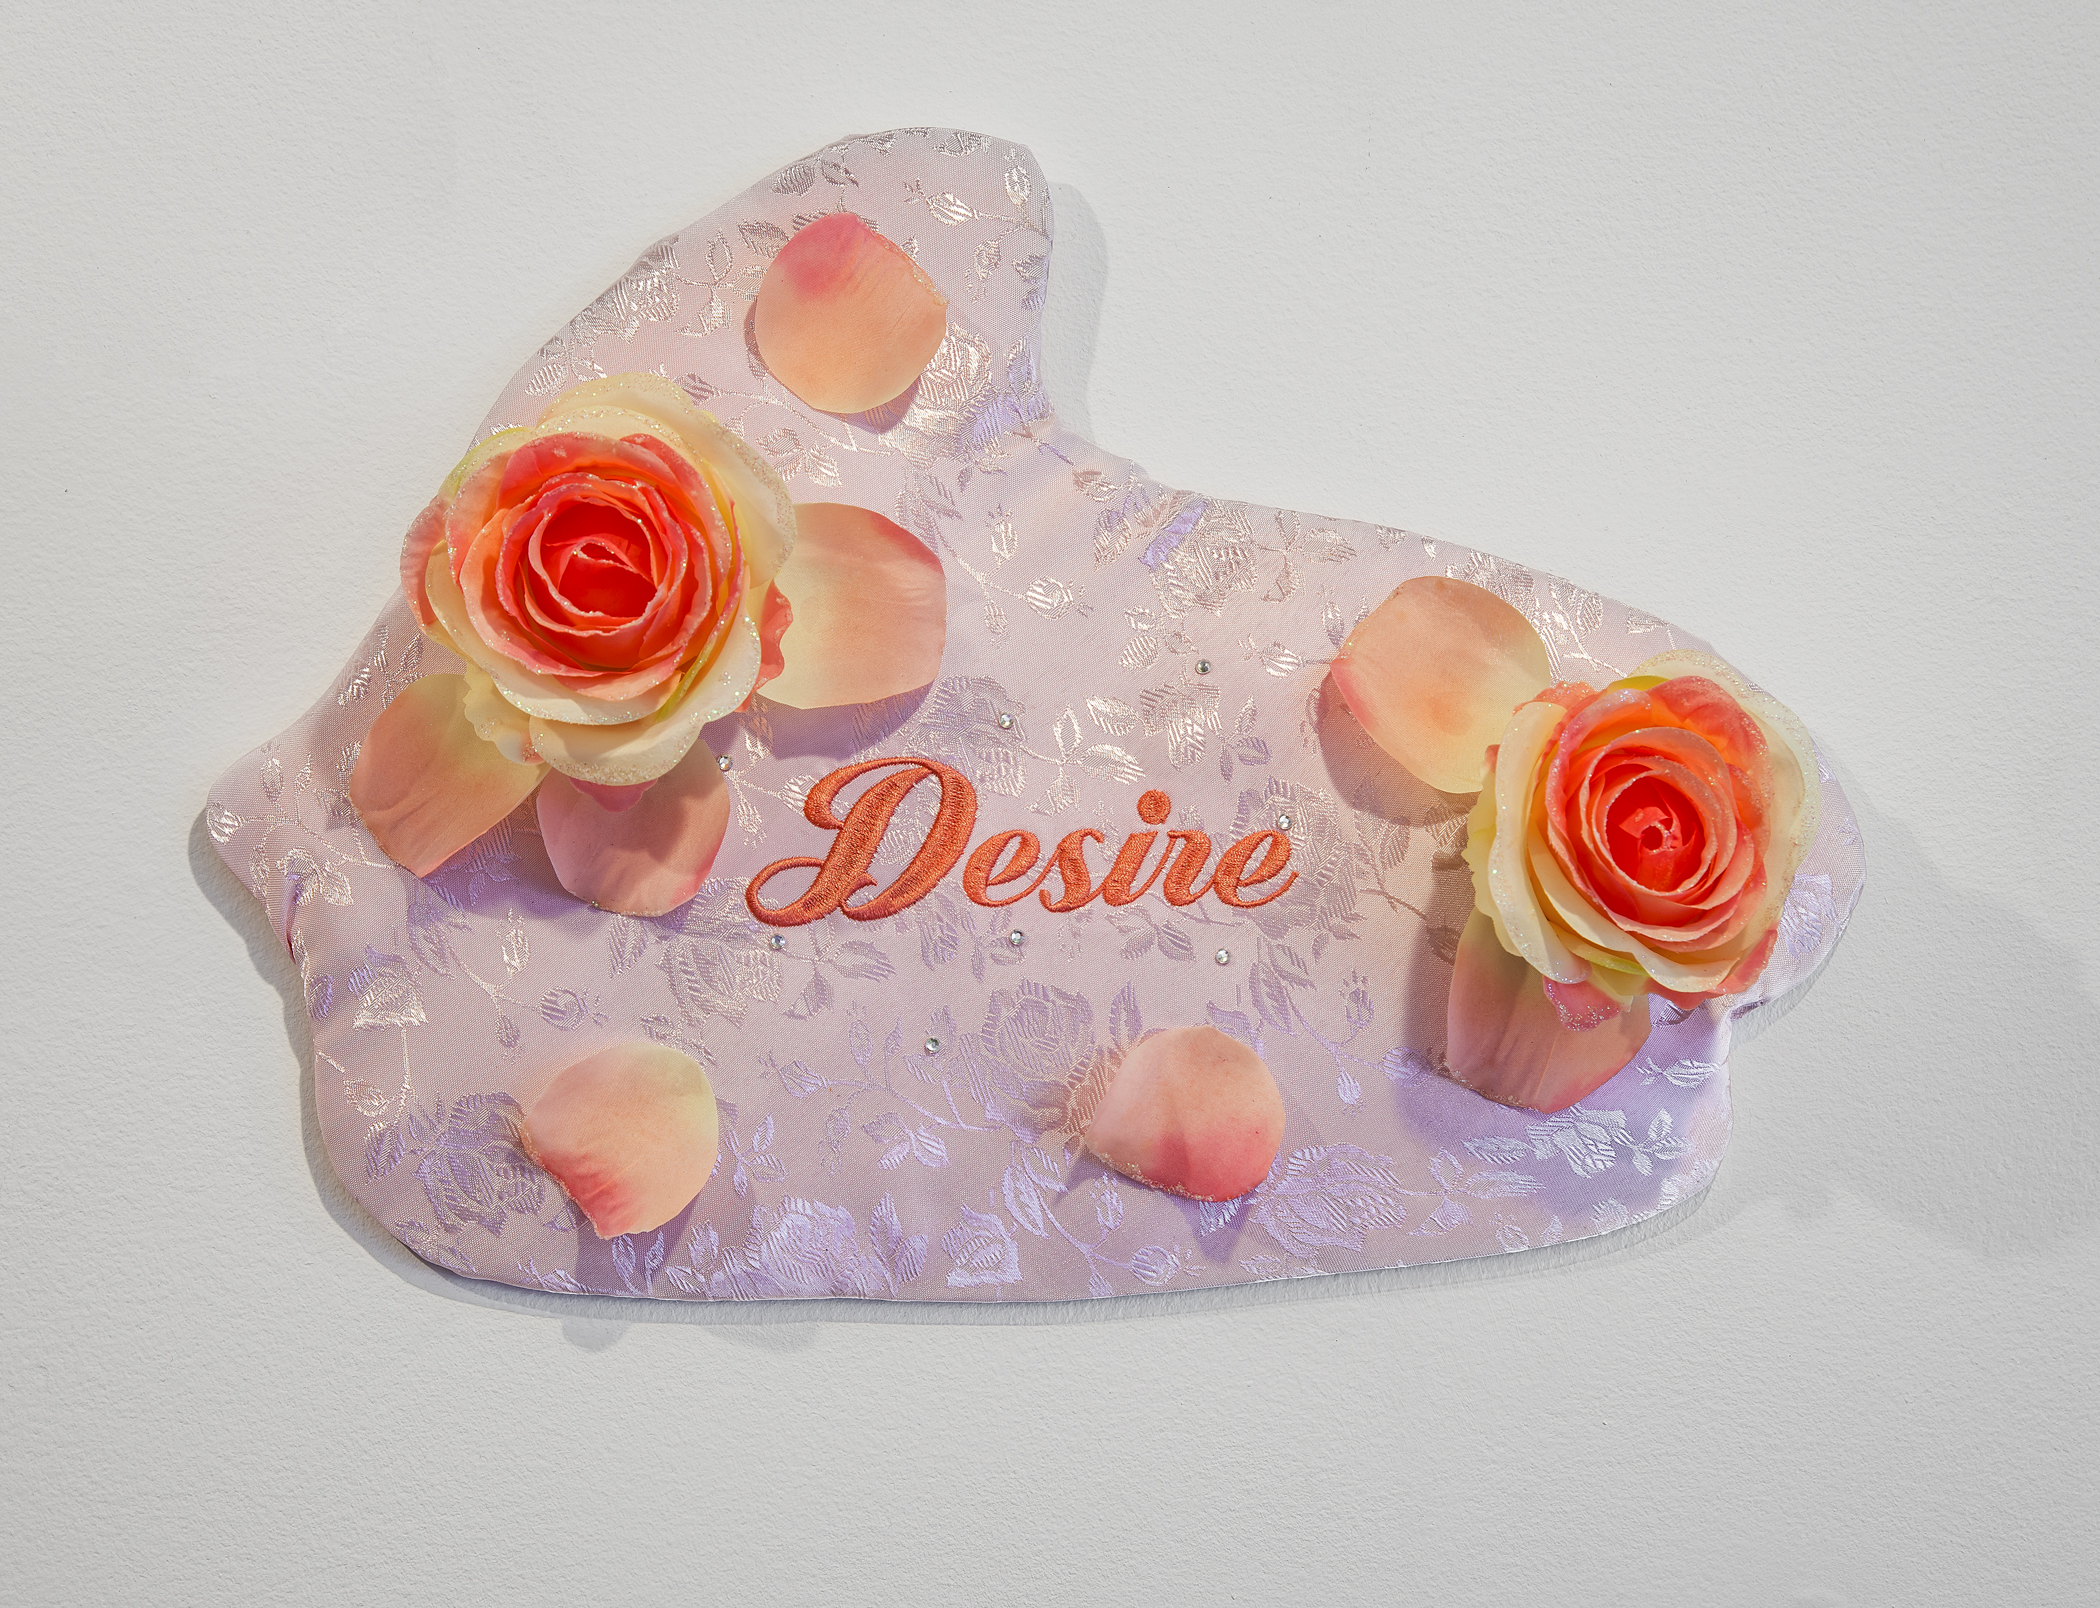 Desire 4   fabric, machine embroidery, rhinestones, poly-fill, fake roses, plywood